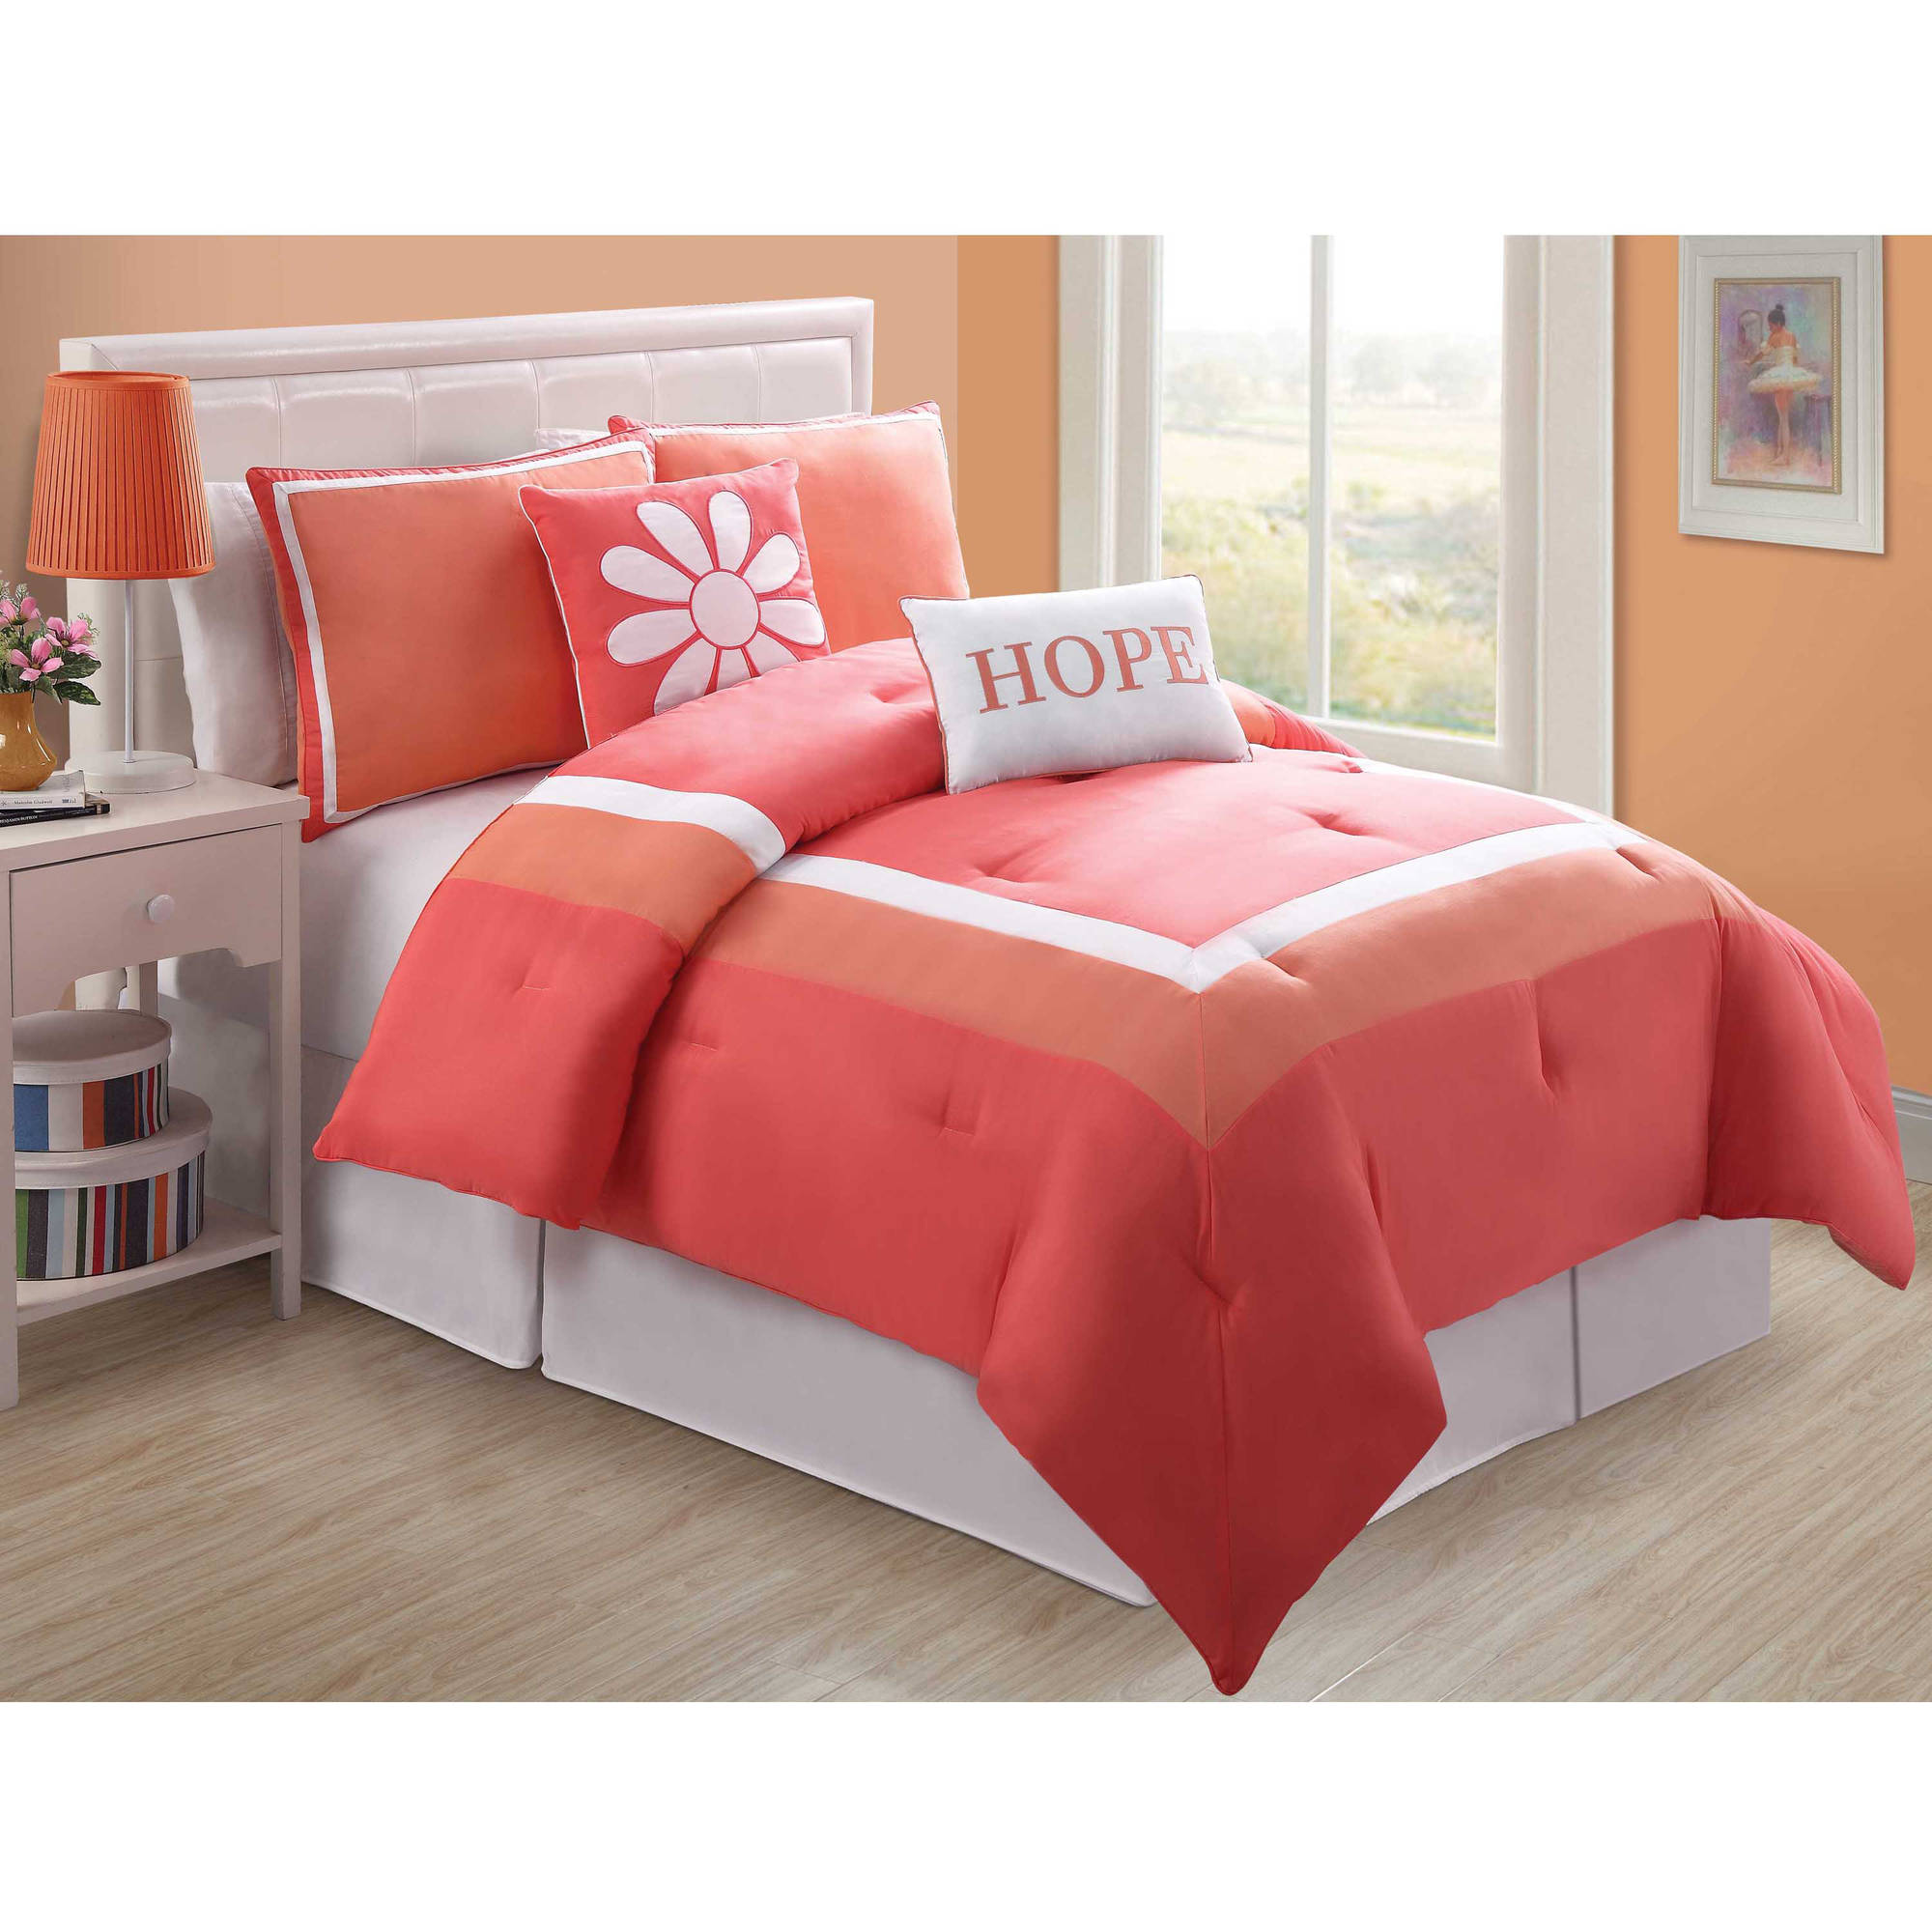 VCNY Hotel Juvi Kids Reversible Bedding Comforter Set, Multiple Colors Available